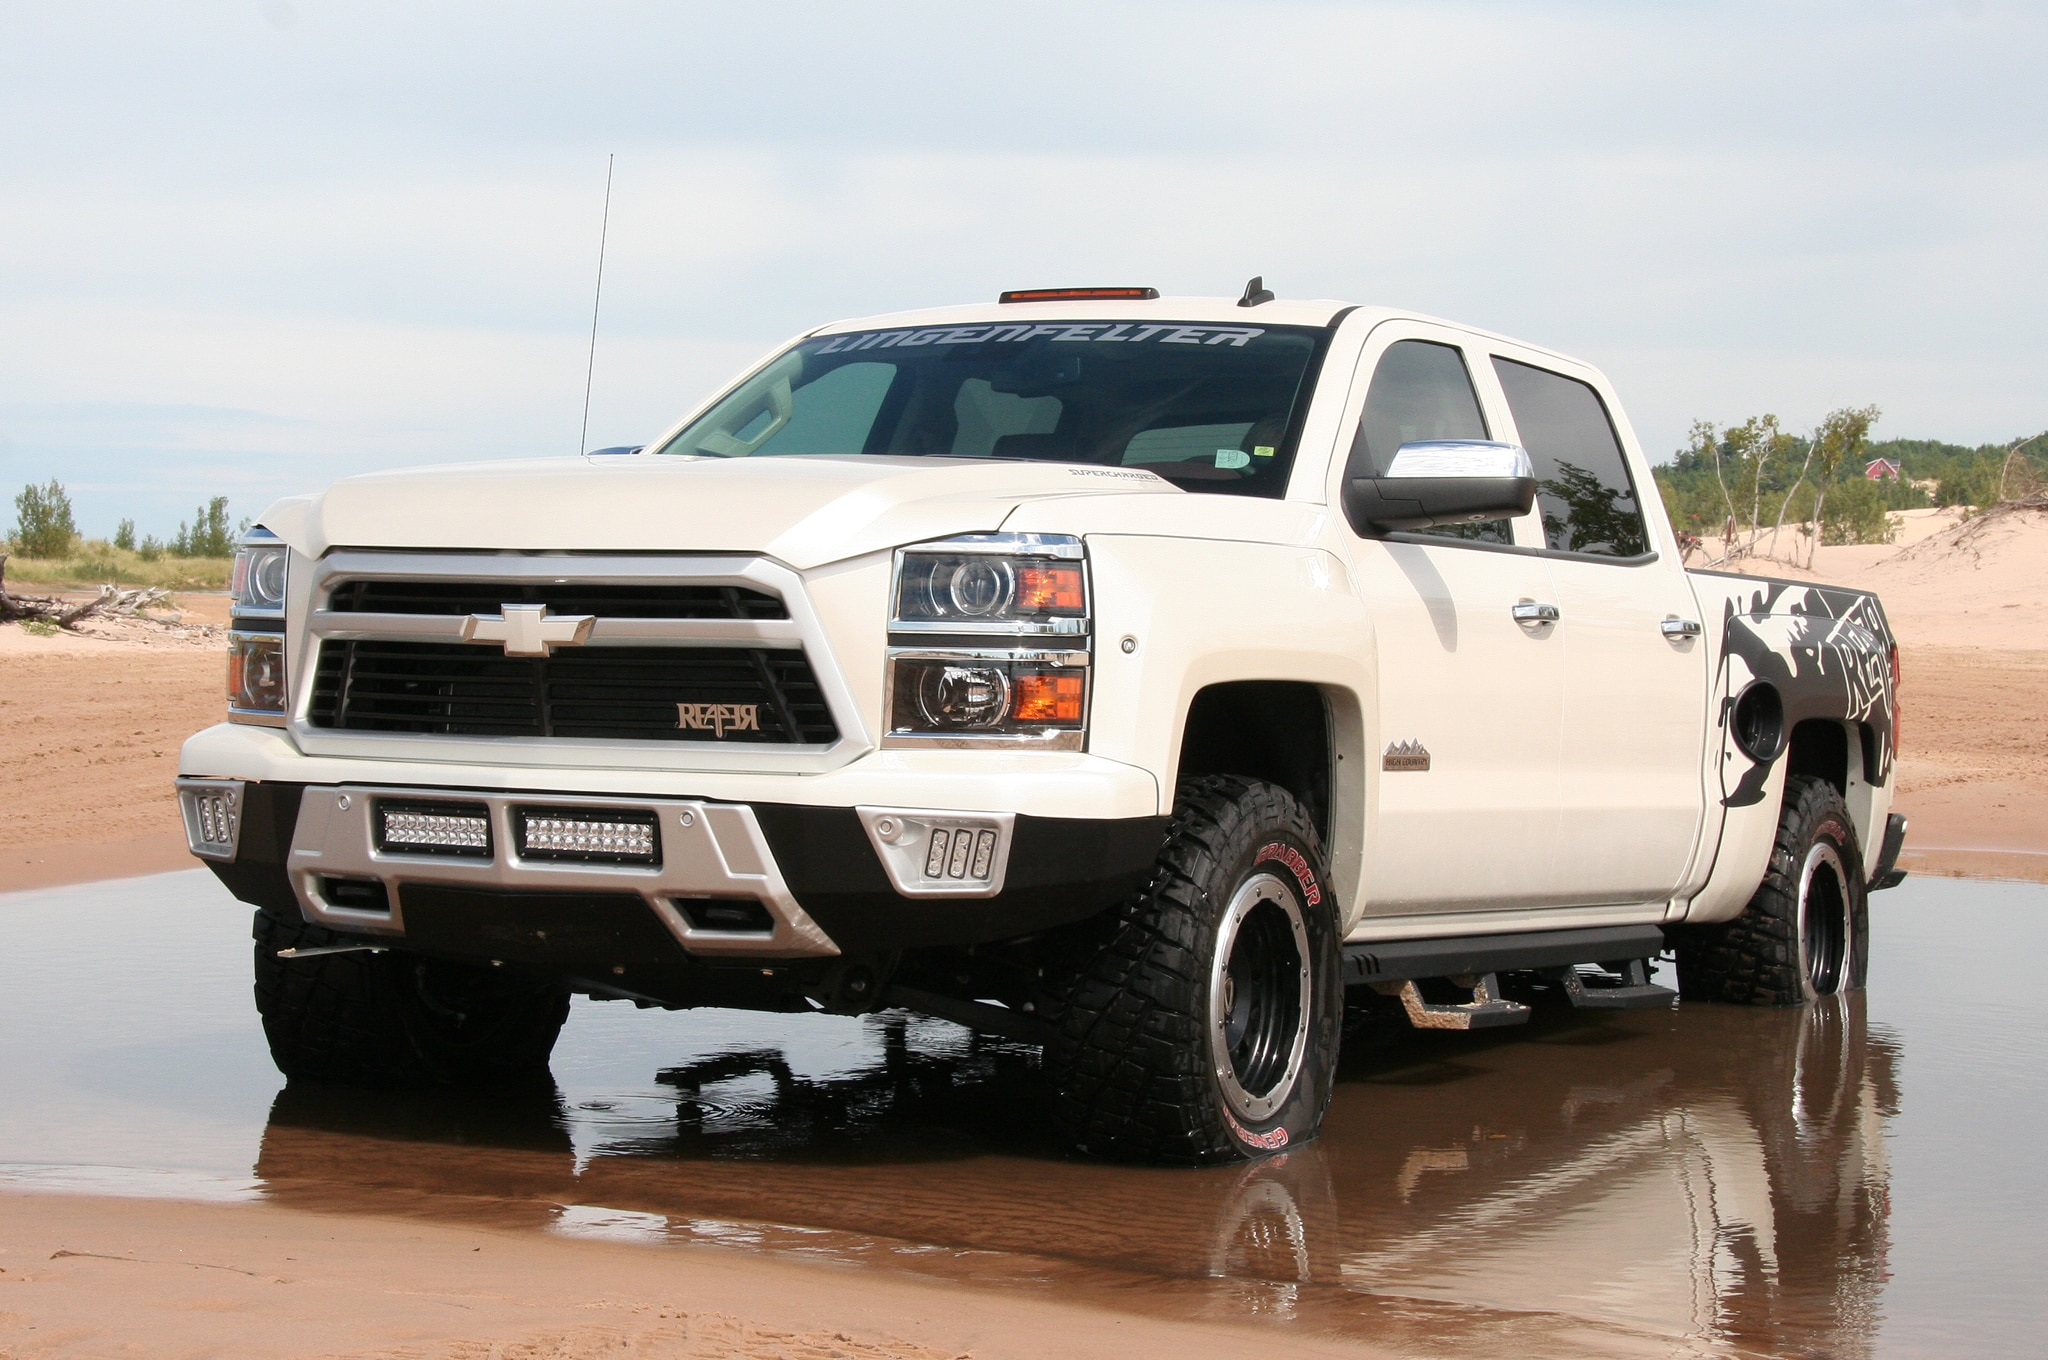 Chevy Reaper For Sale >> 2014 Chevrolet Silverado Reaper First Drive